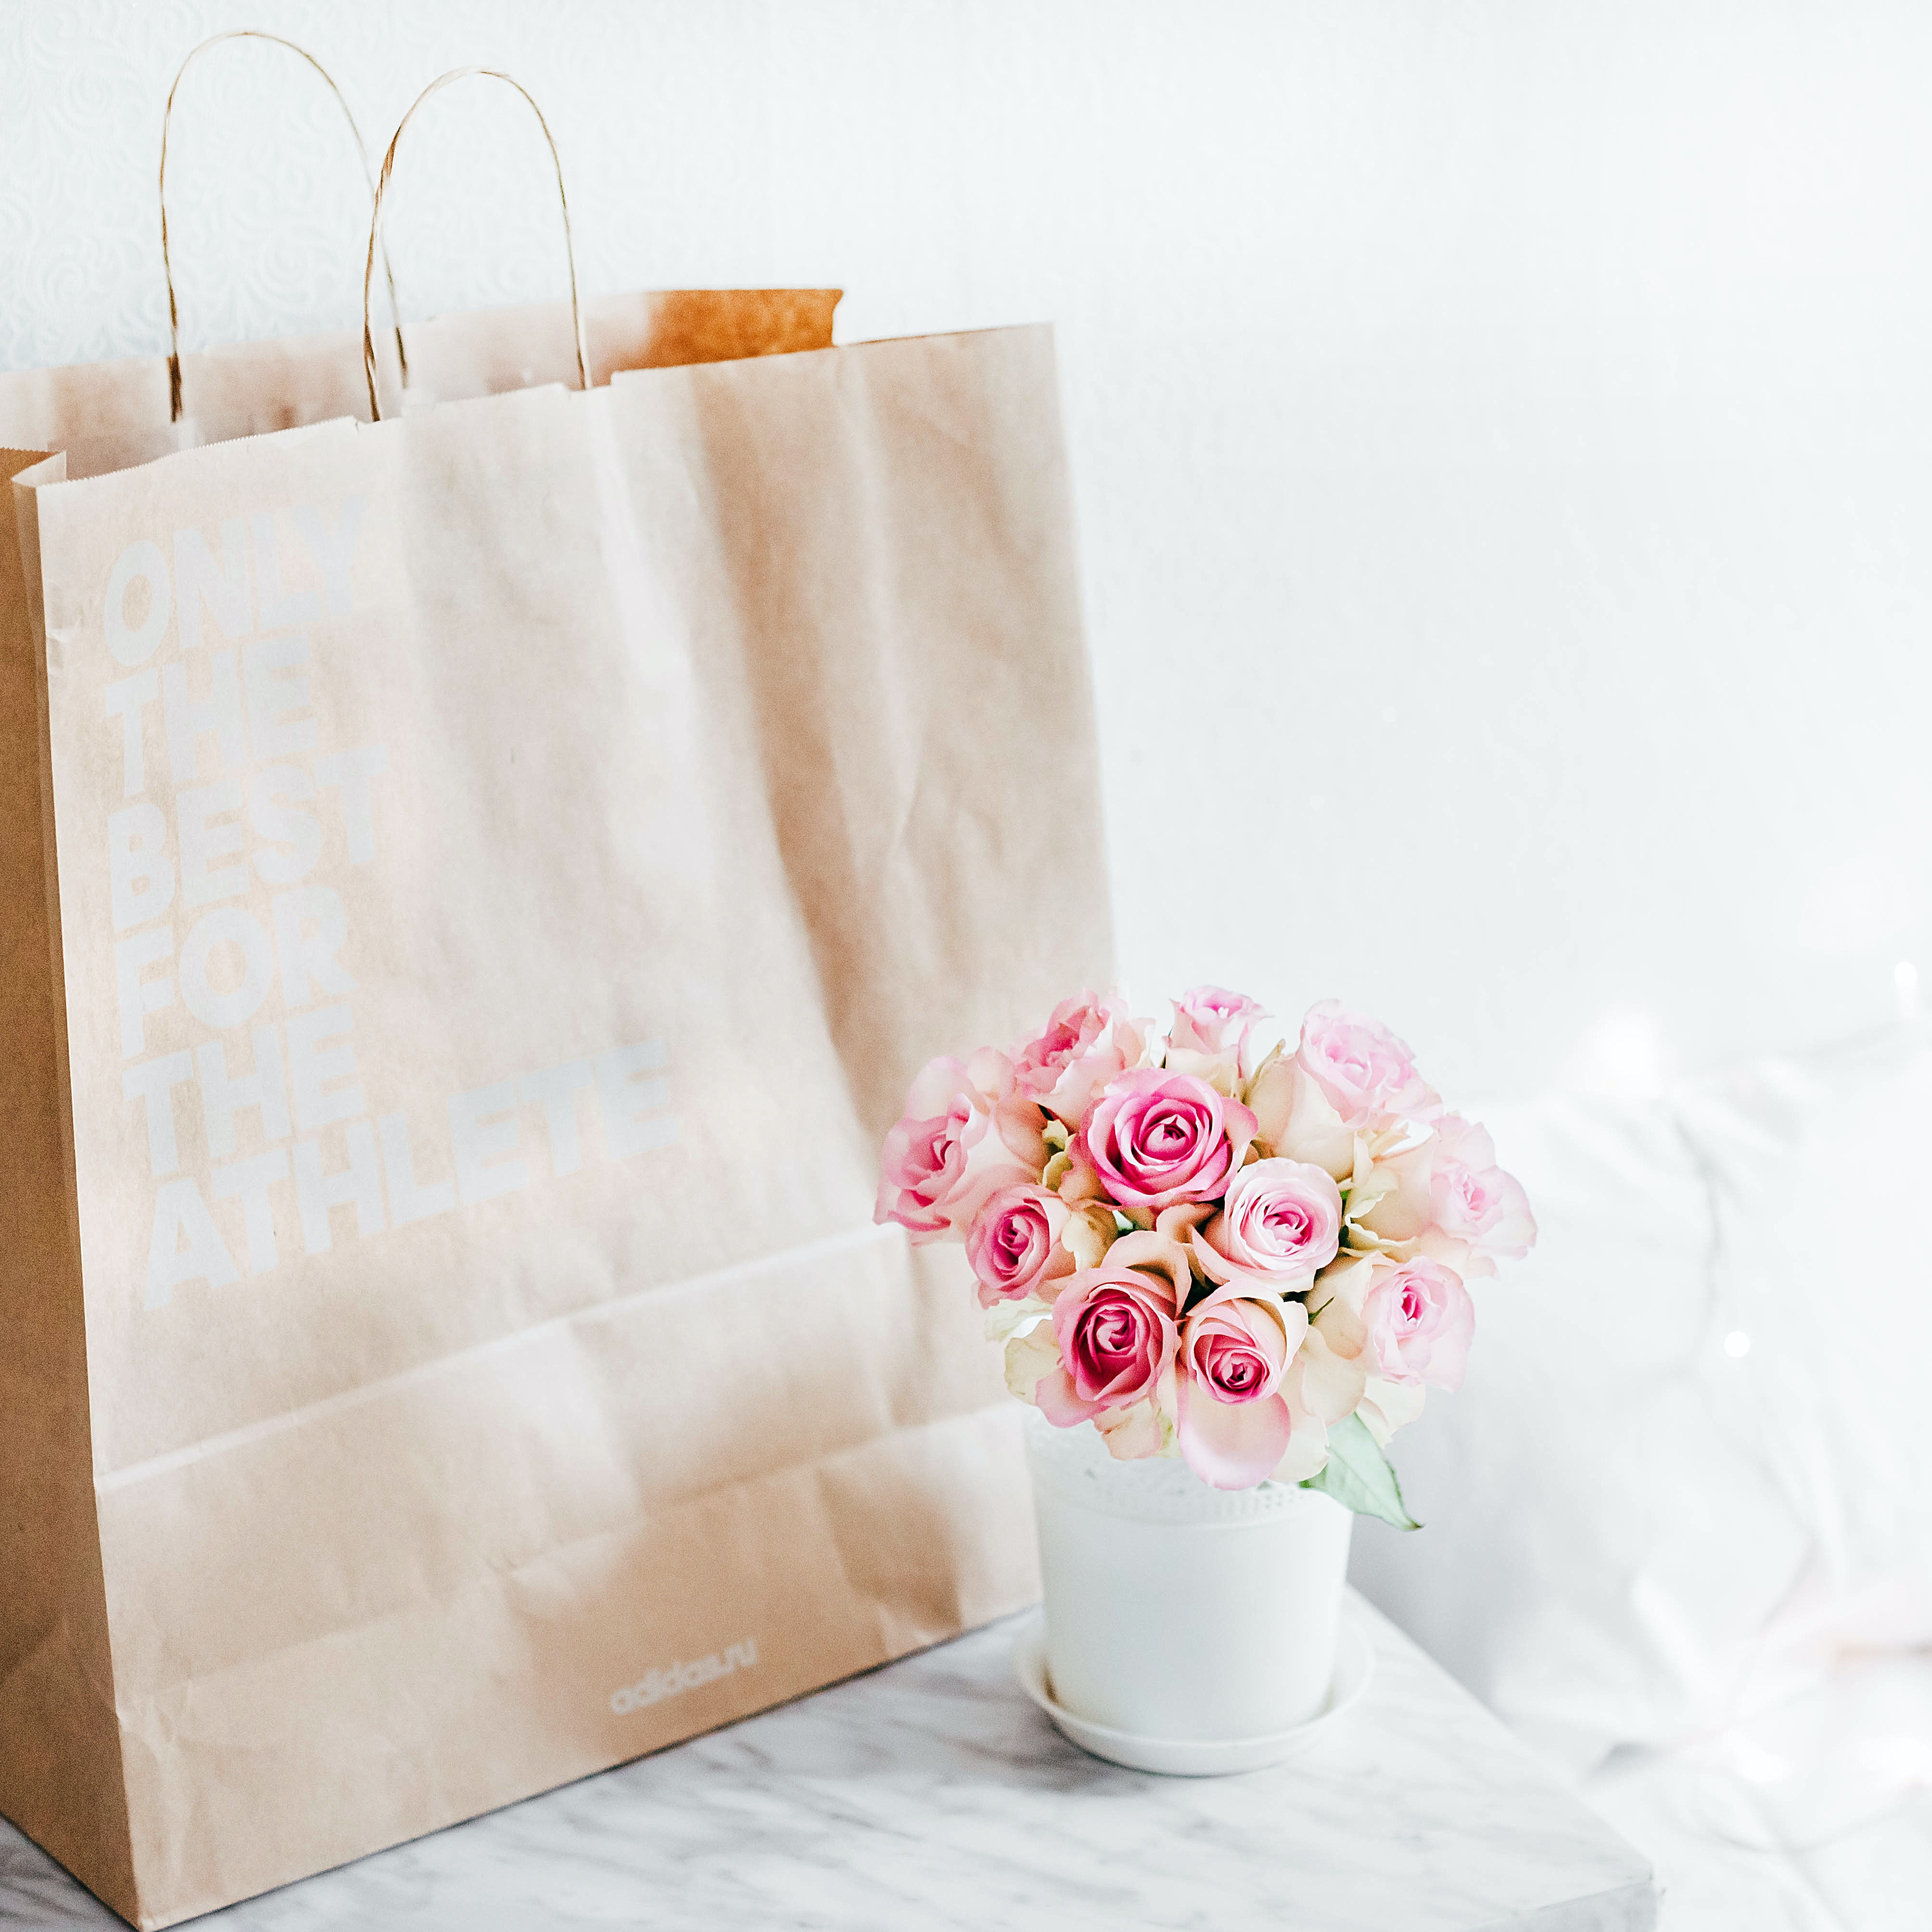 A cup of flowers next to a gift bag.